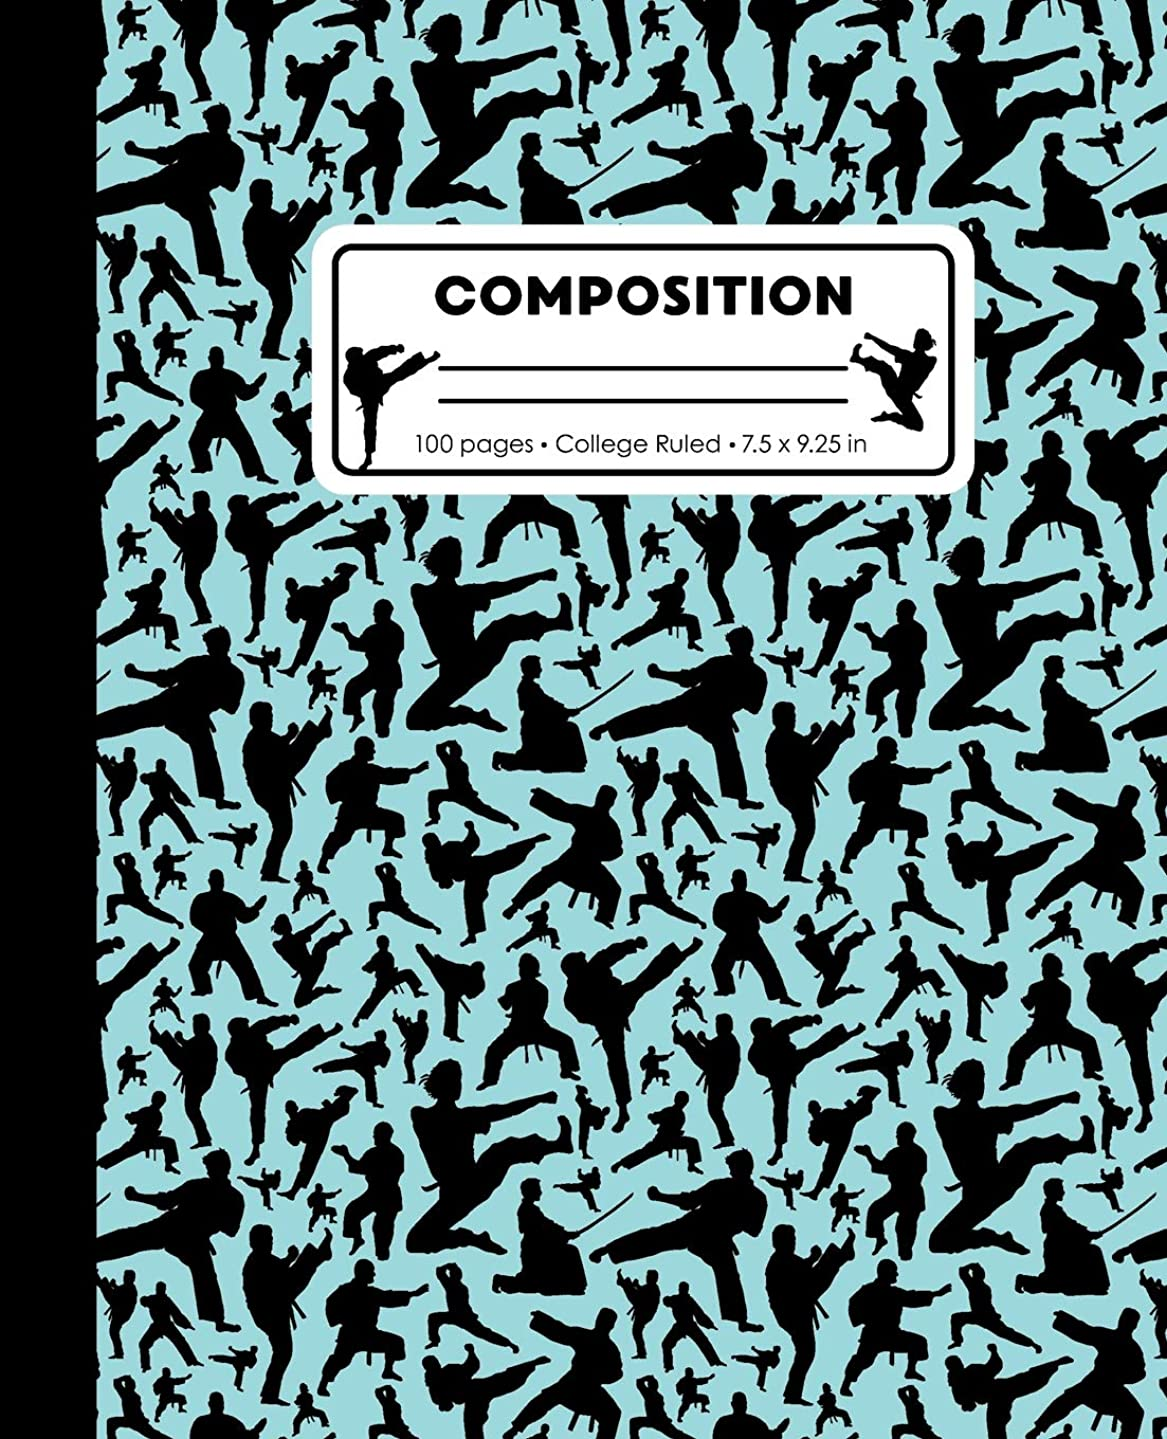 Composition: College Ruled Writing Notebook, Teal Blue Karate Martial Arts Pattern Marbled Blank Lined Book